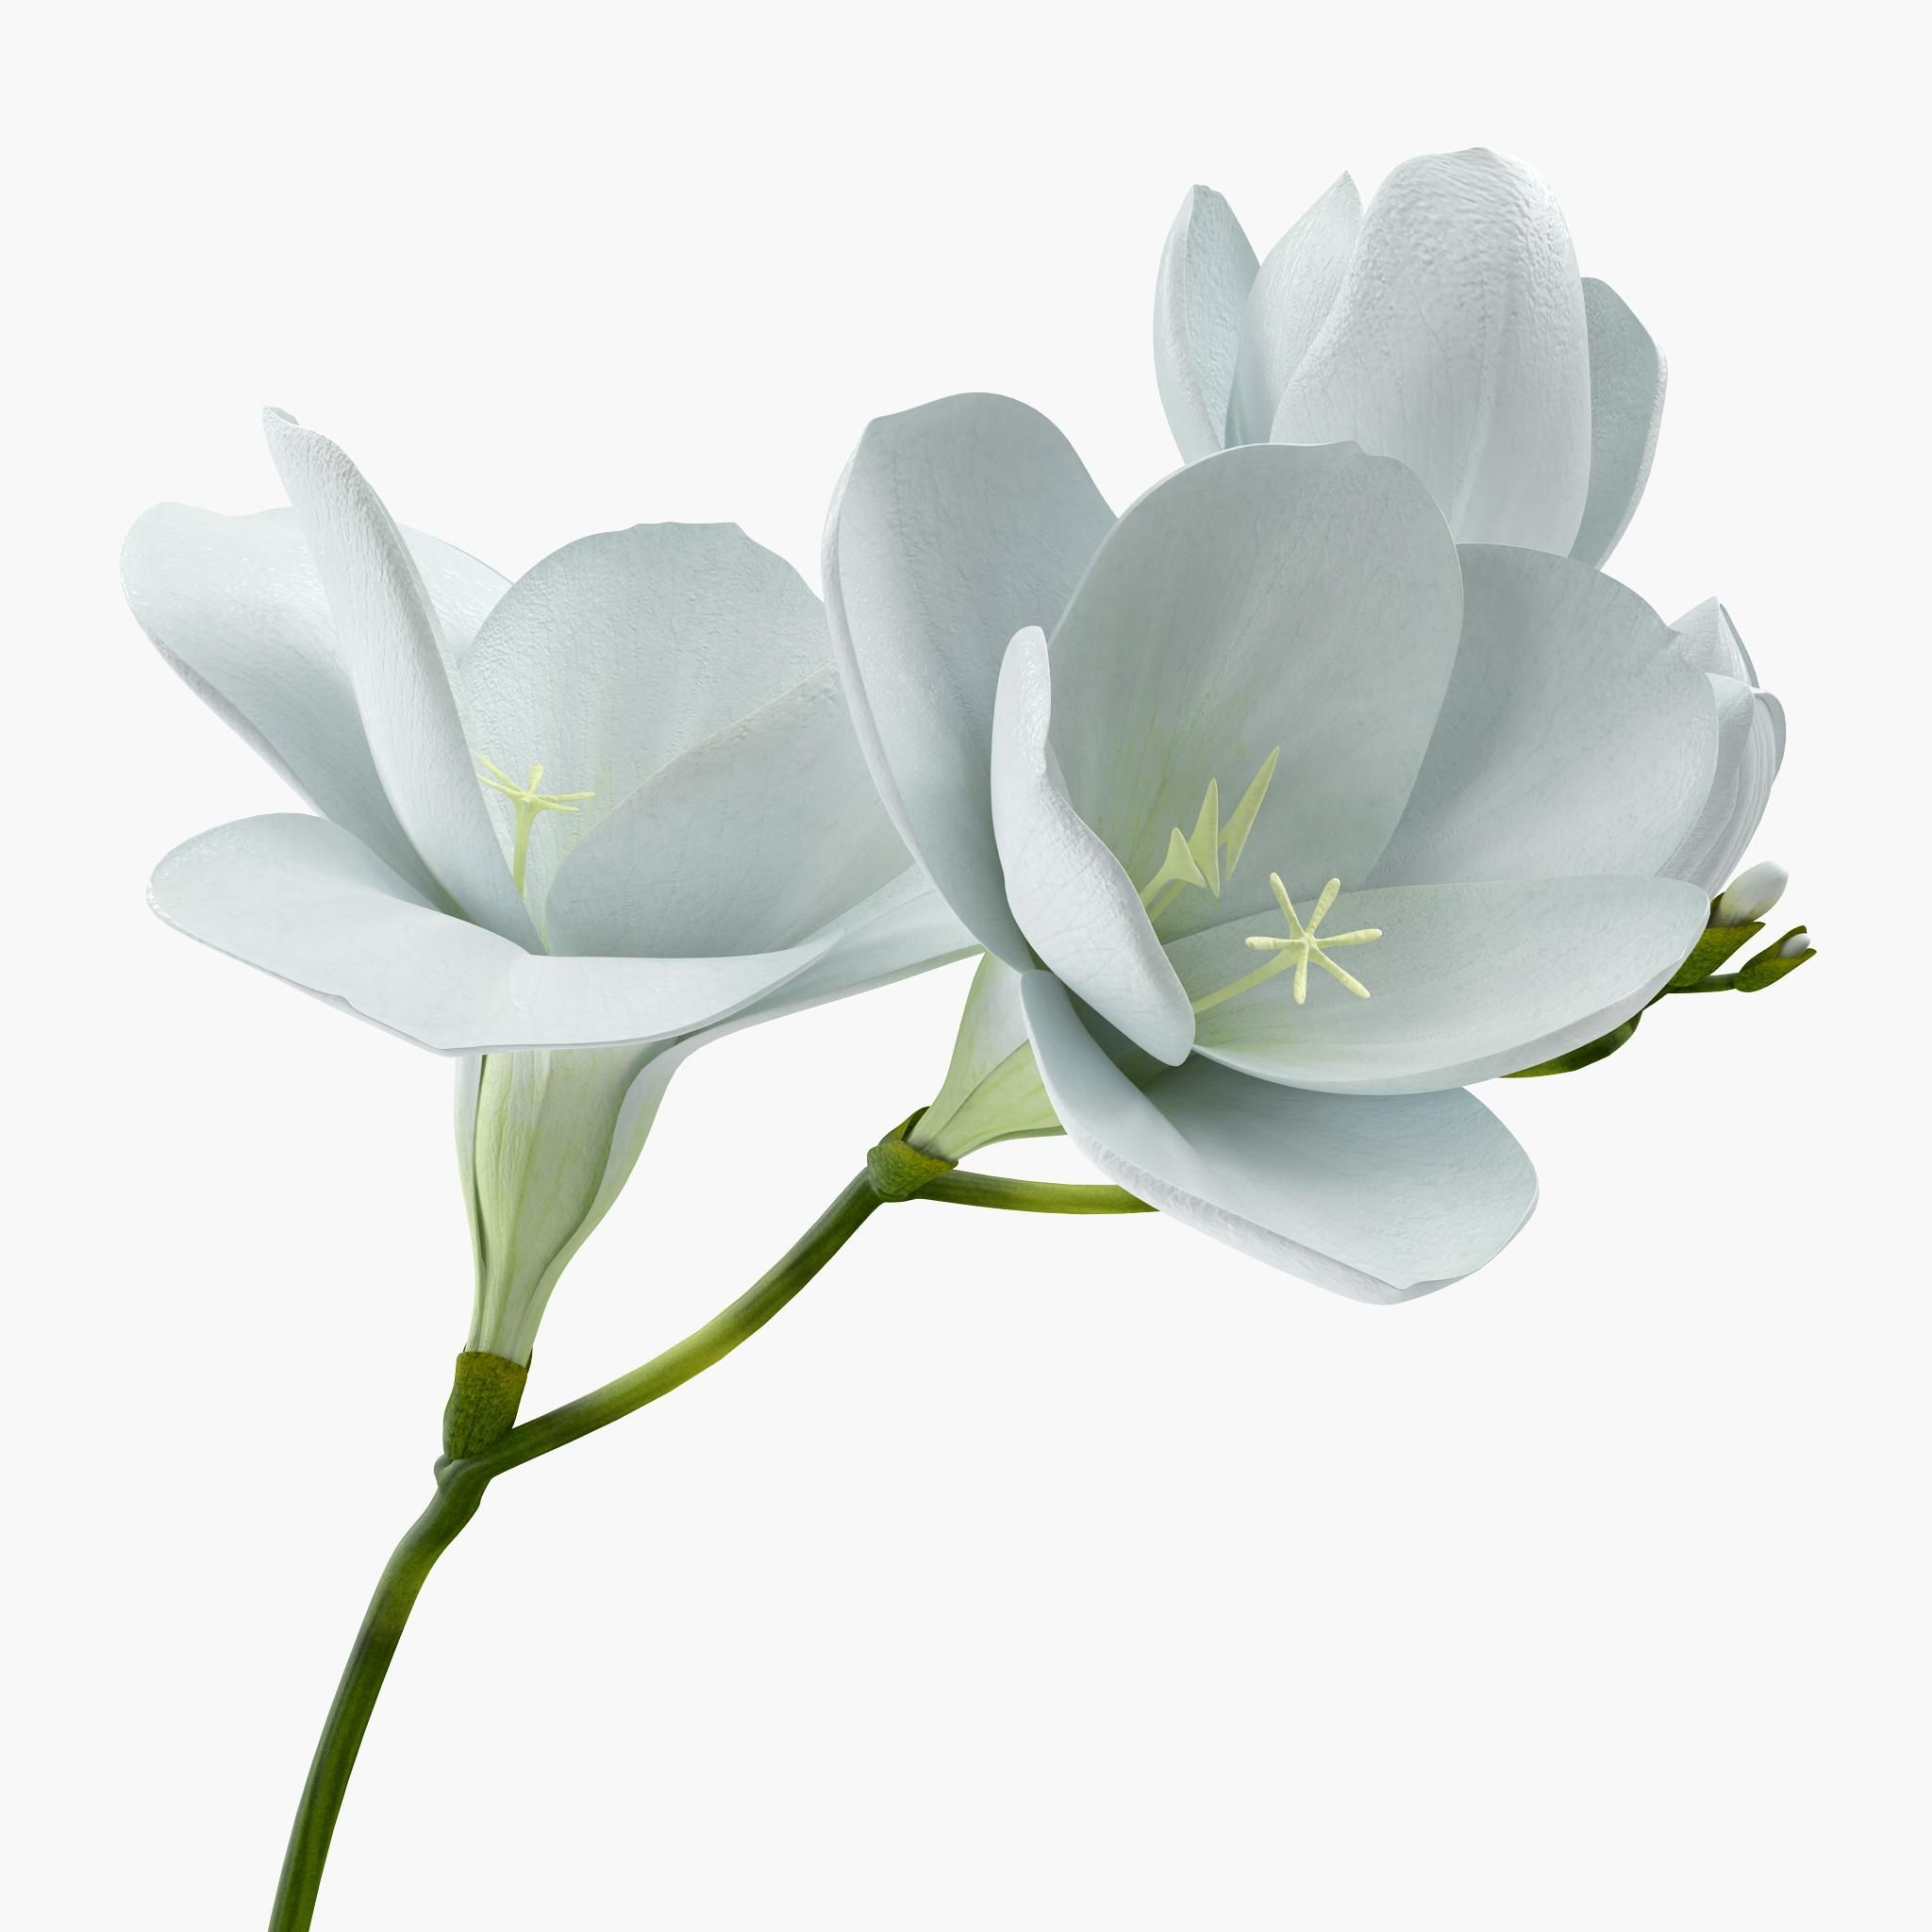 White Freesia Flower 3d Model Ad Freesia White Model Flower Freesia Flowers Freesia Flowers